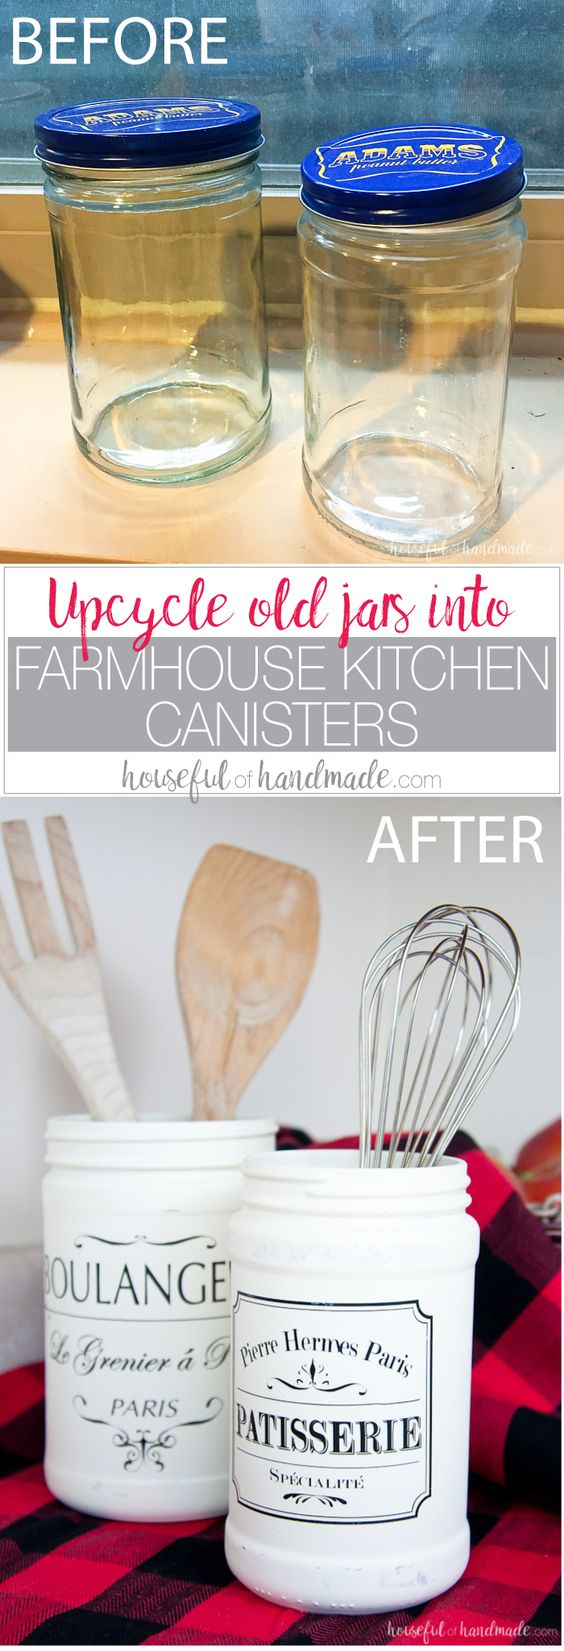 Turn Old Jars Into Farmhouse Kitchen Canister.